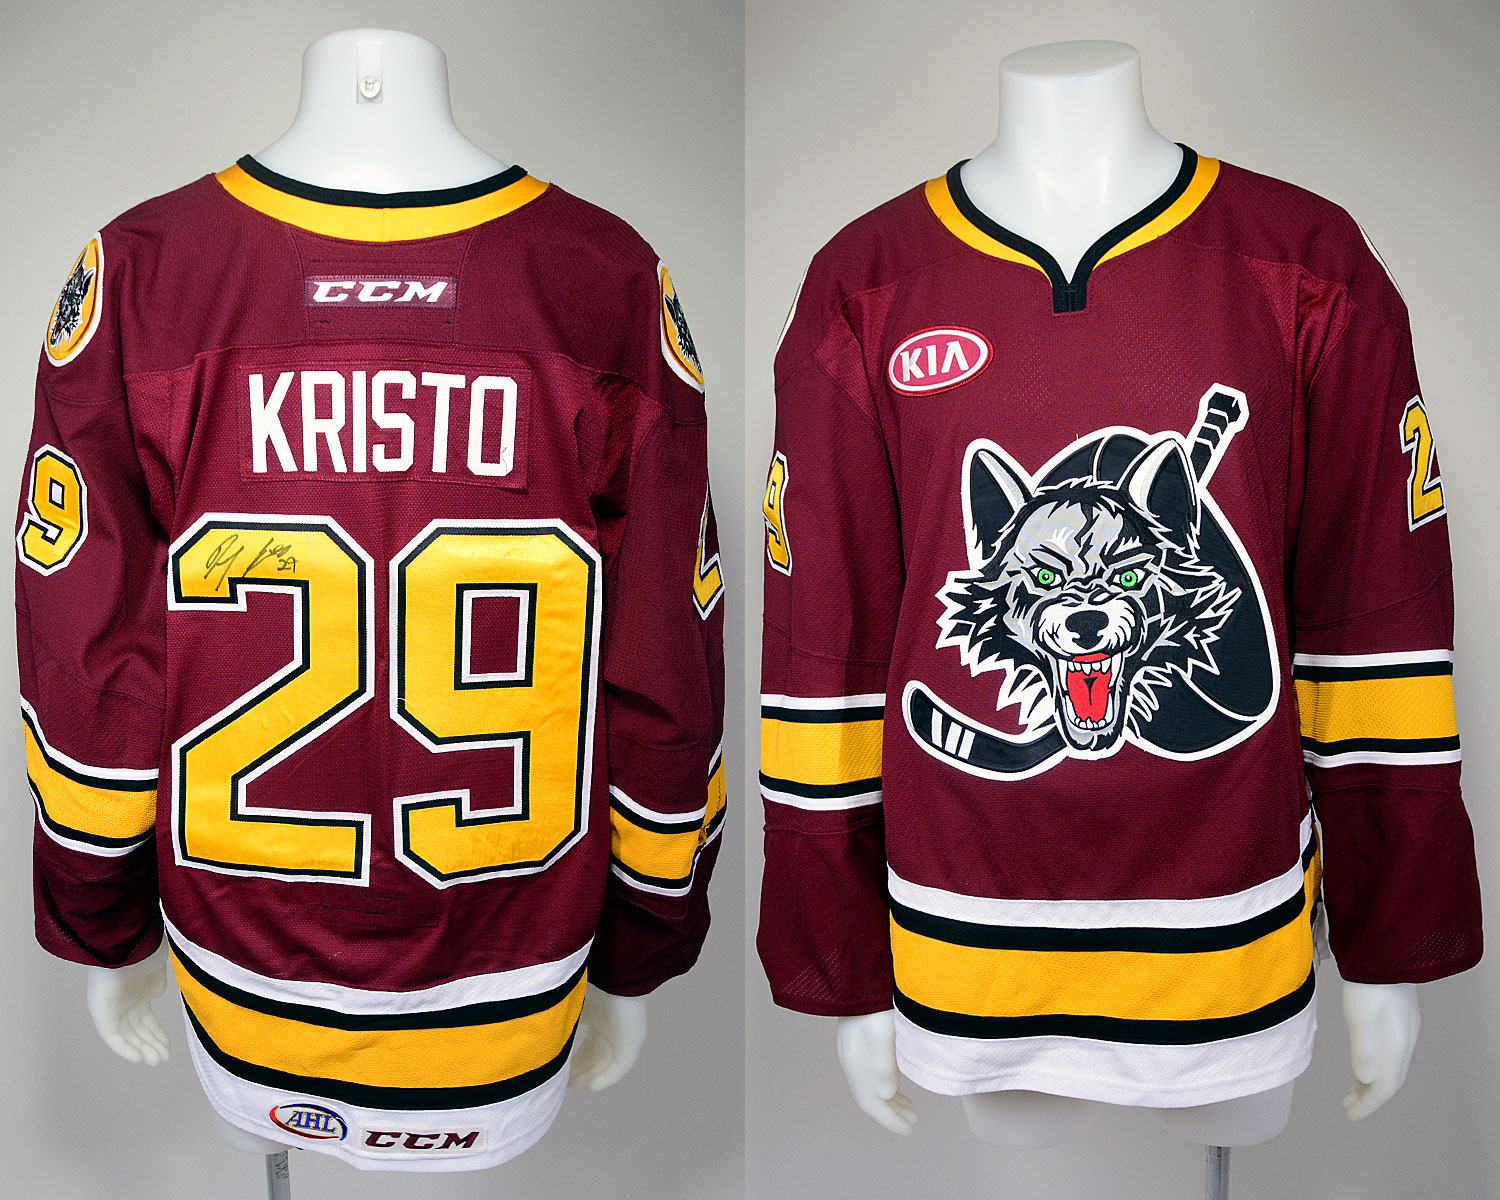 The Chicago Wolves will be celebrating their 25th anniversary this season.  They ve been wearing a neon green and black alternate jersey  ... 1a2590ae365